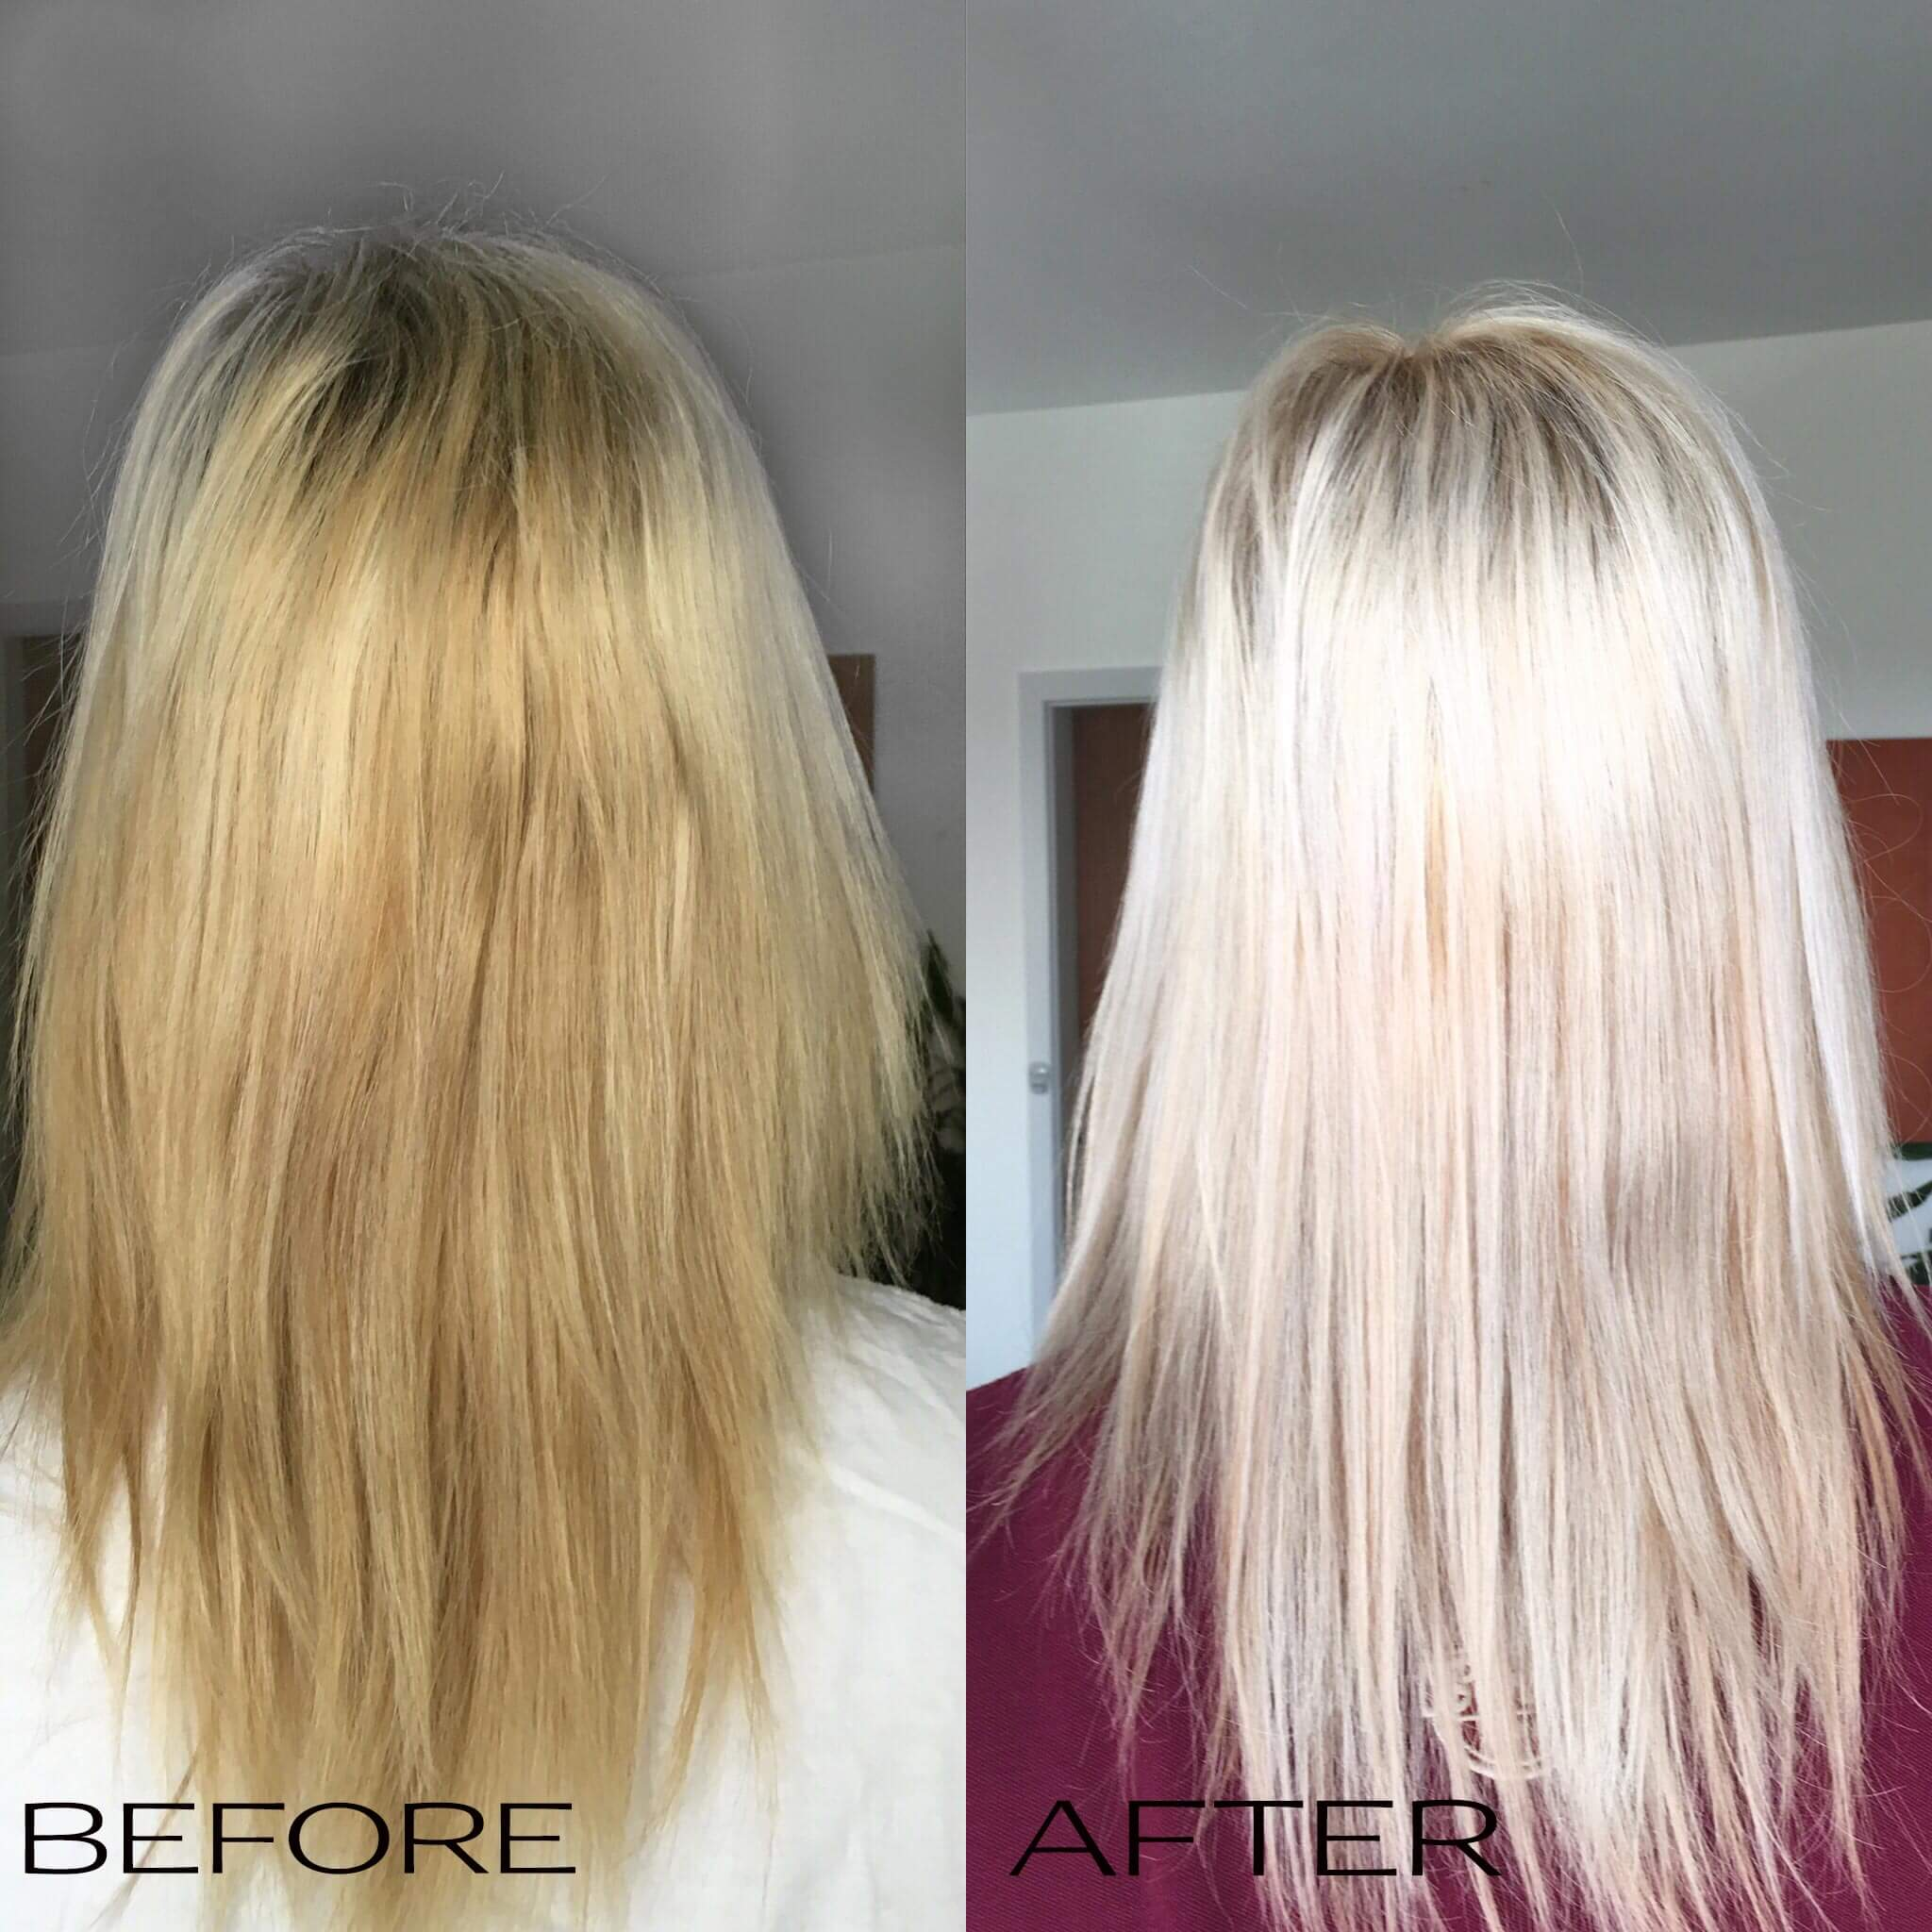 Natural Dye At Home Hair Colour User Review